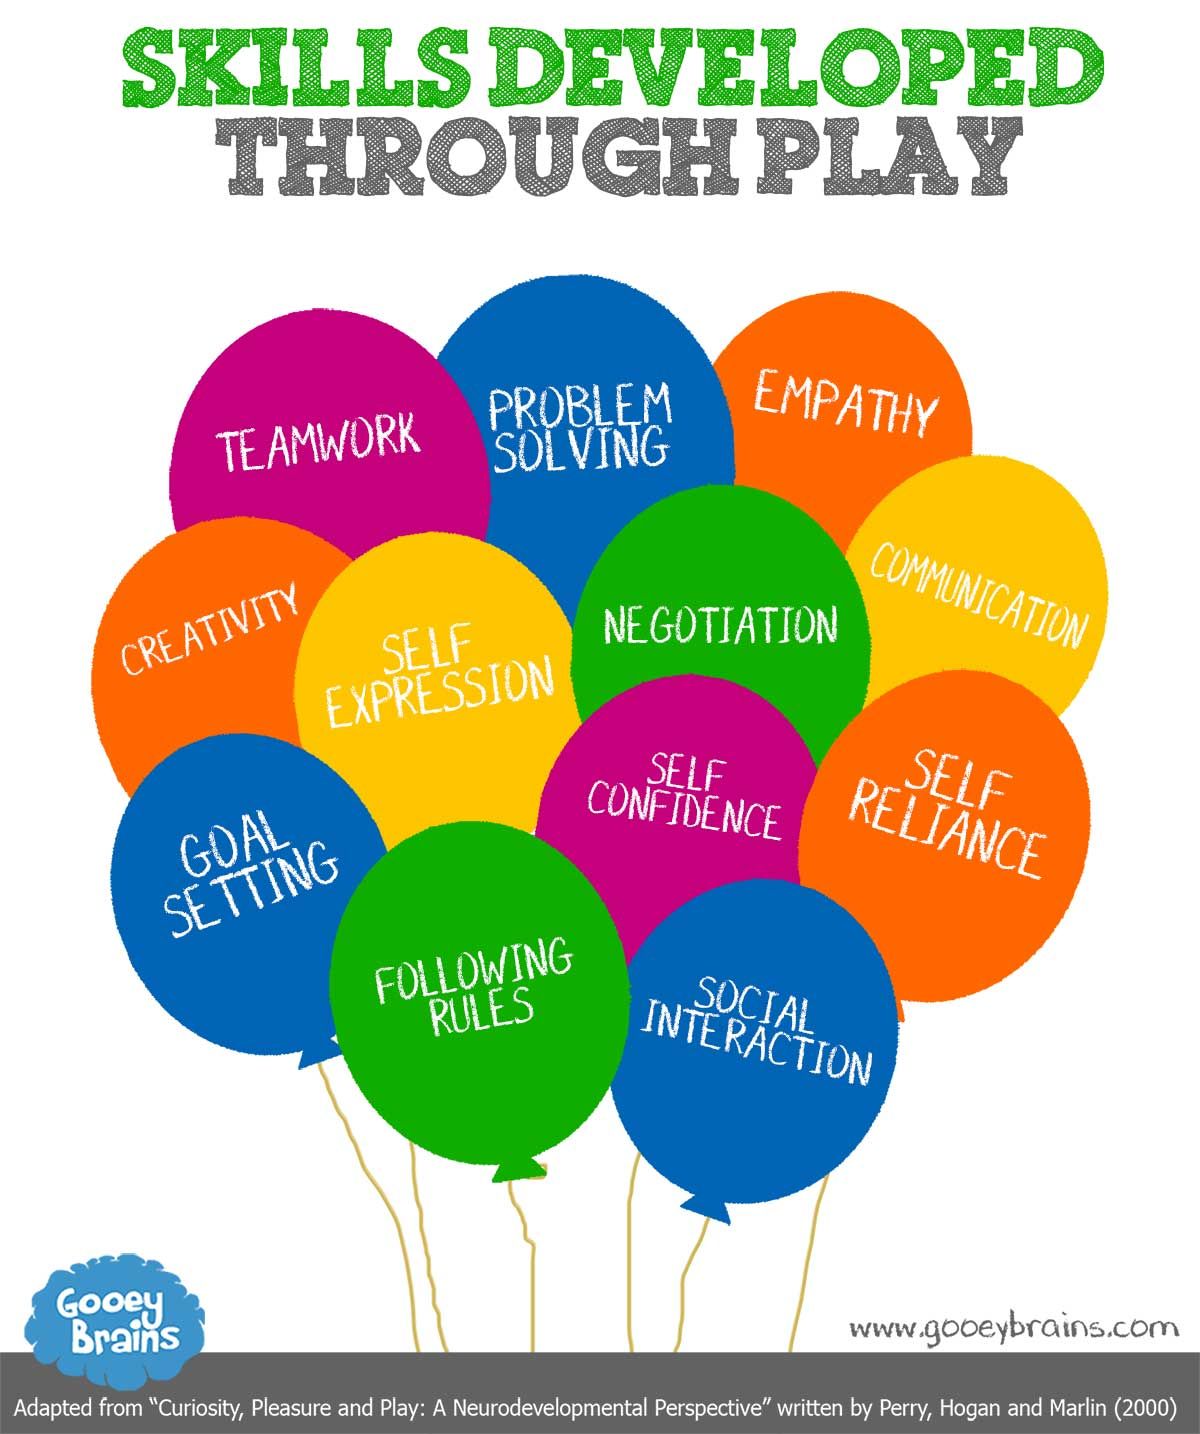 learning through play Planning playtime - learning through play 659,866 likes 84,566 talking about this learning through play with fun educational activities and crafts.